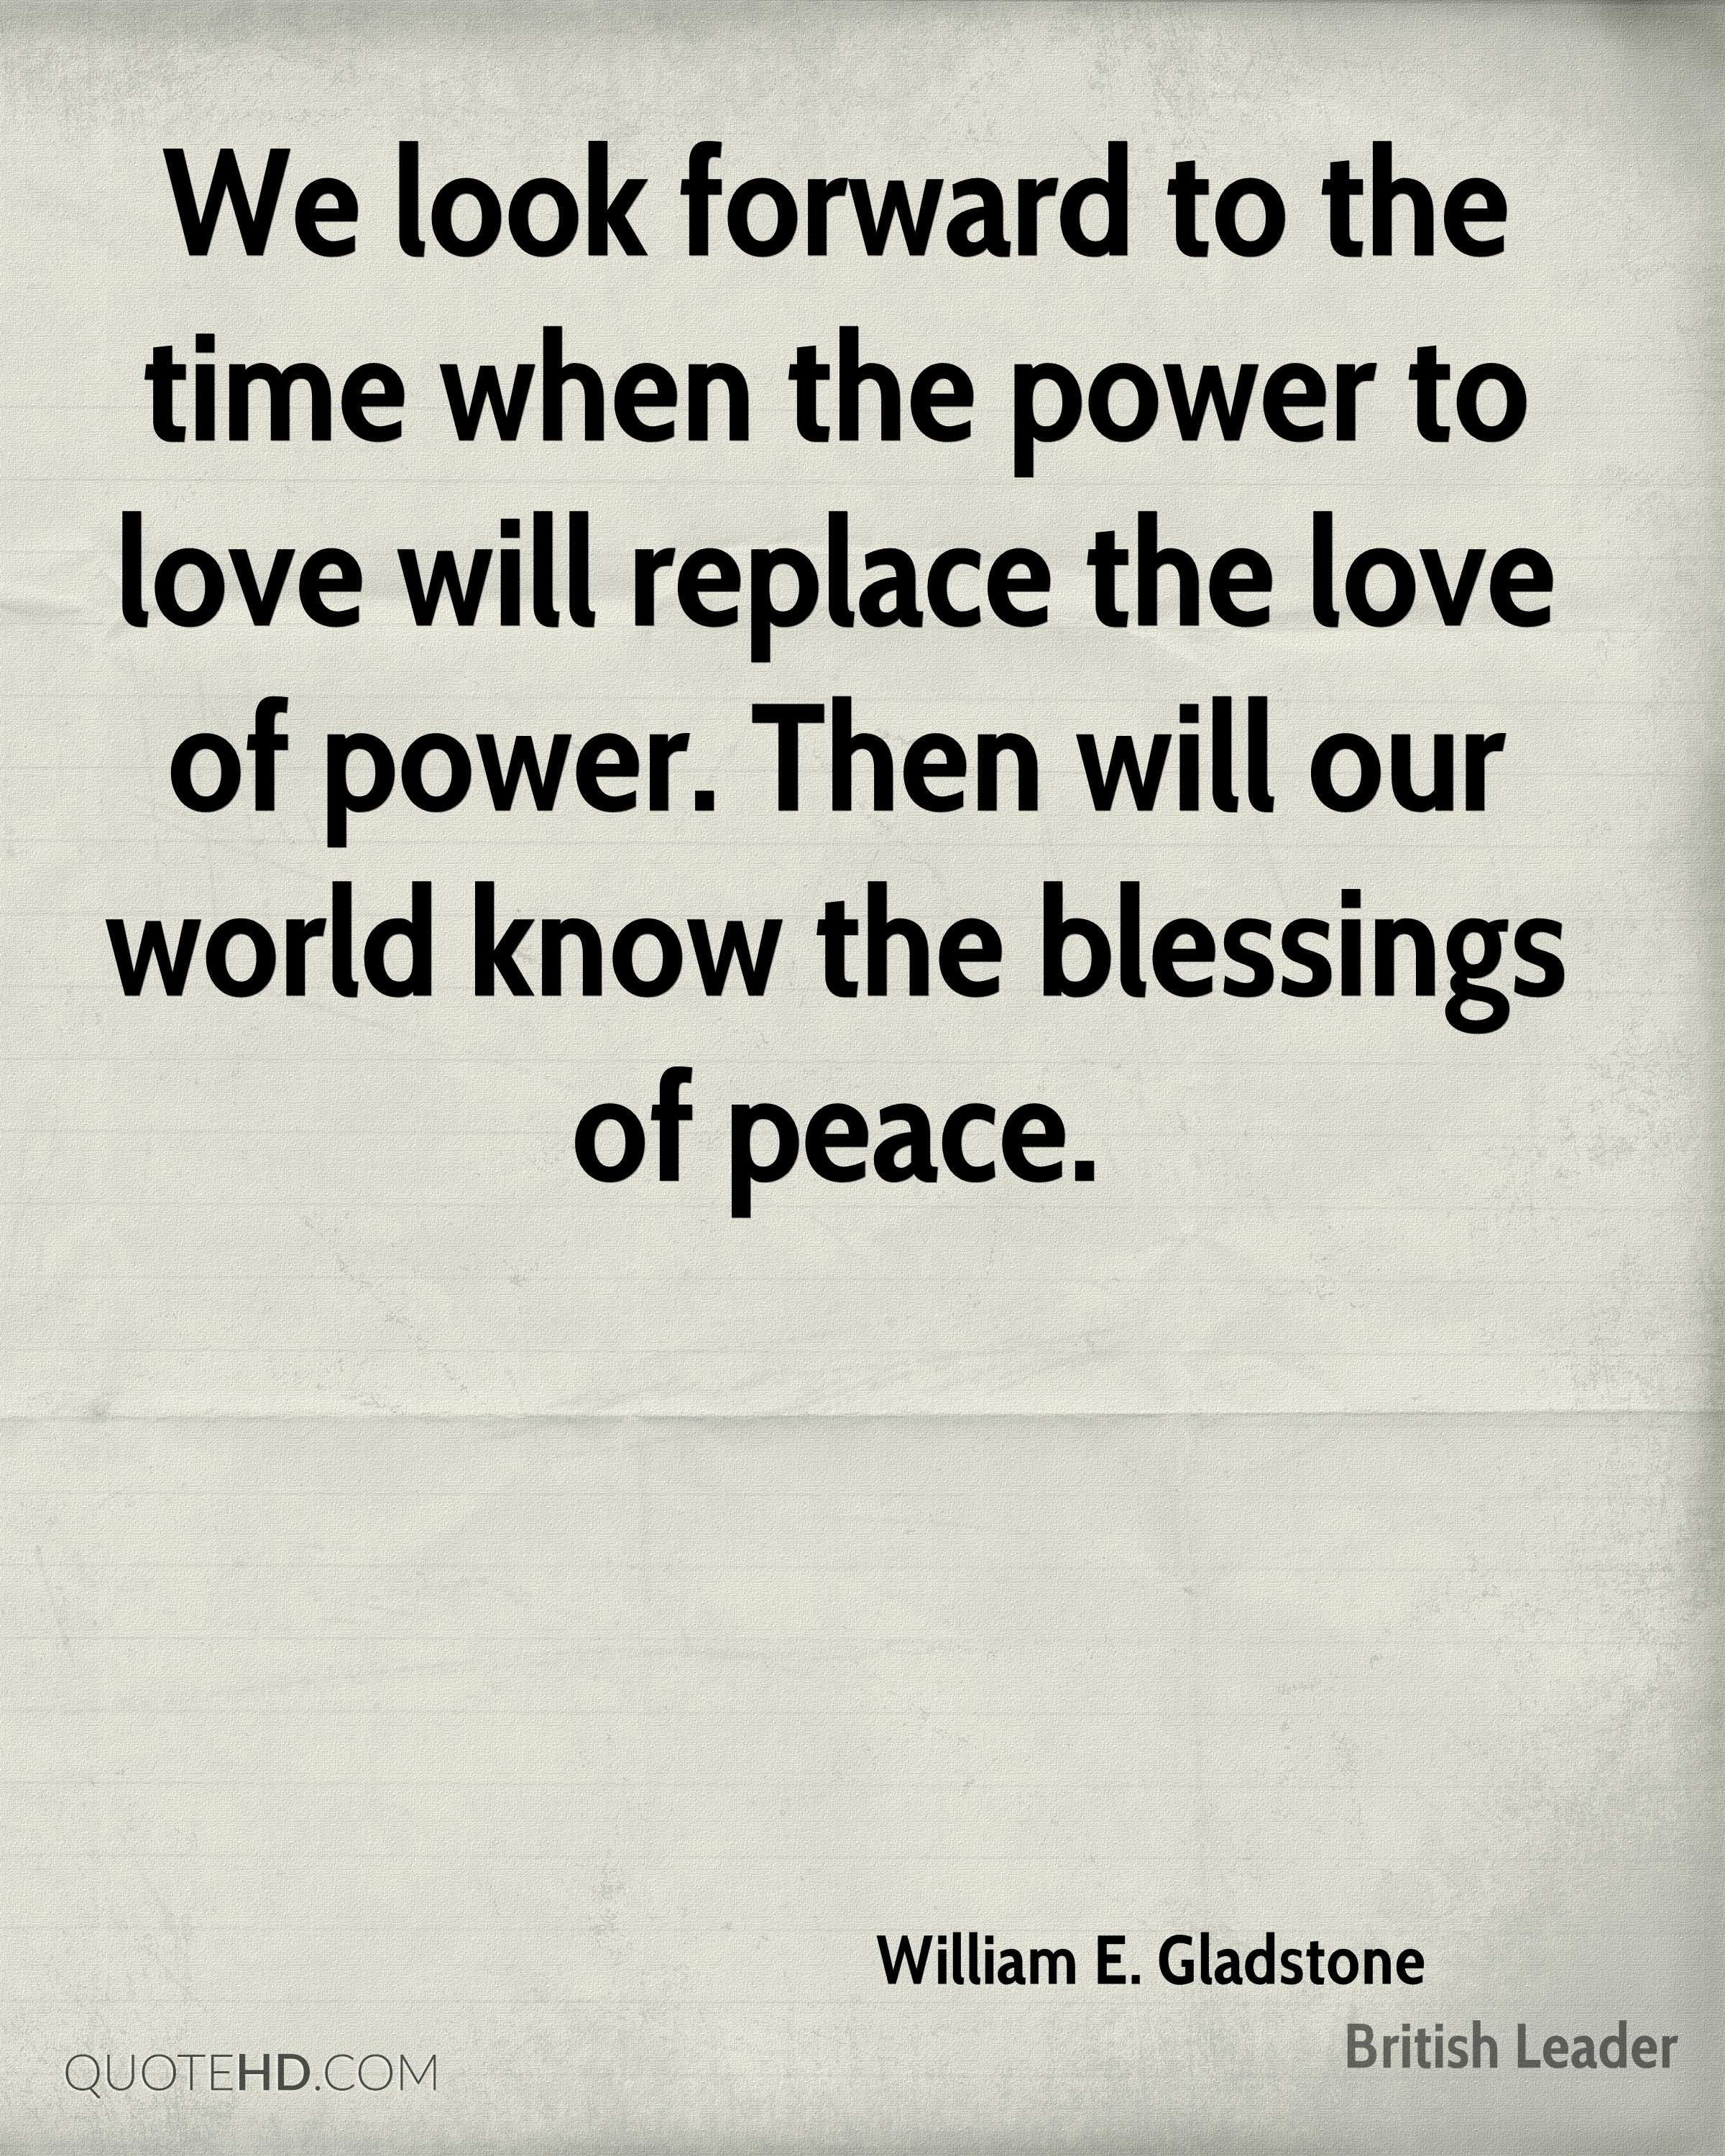 We look forward to the time when the power to love will replace the love of power. Then will our world know the blessings of peace.